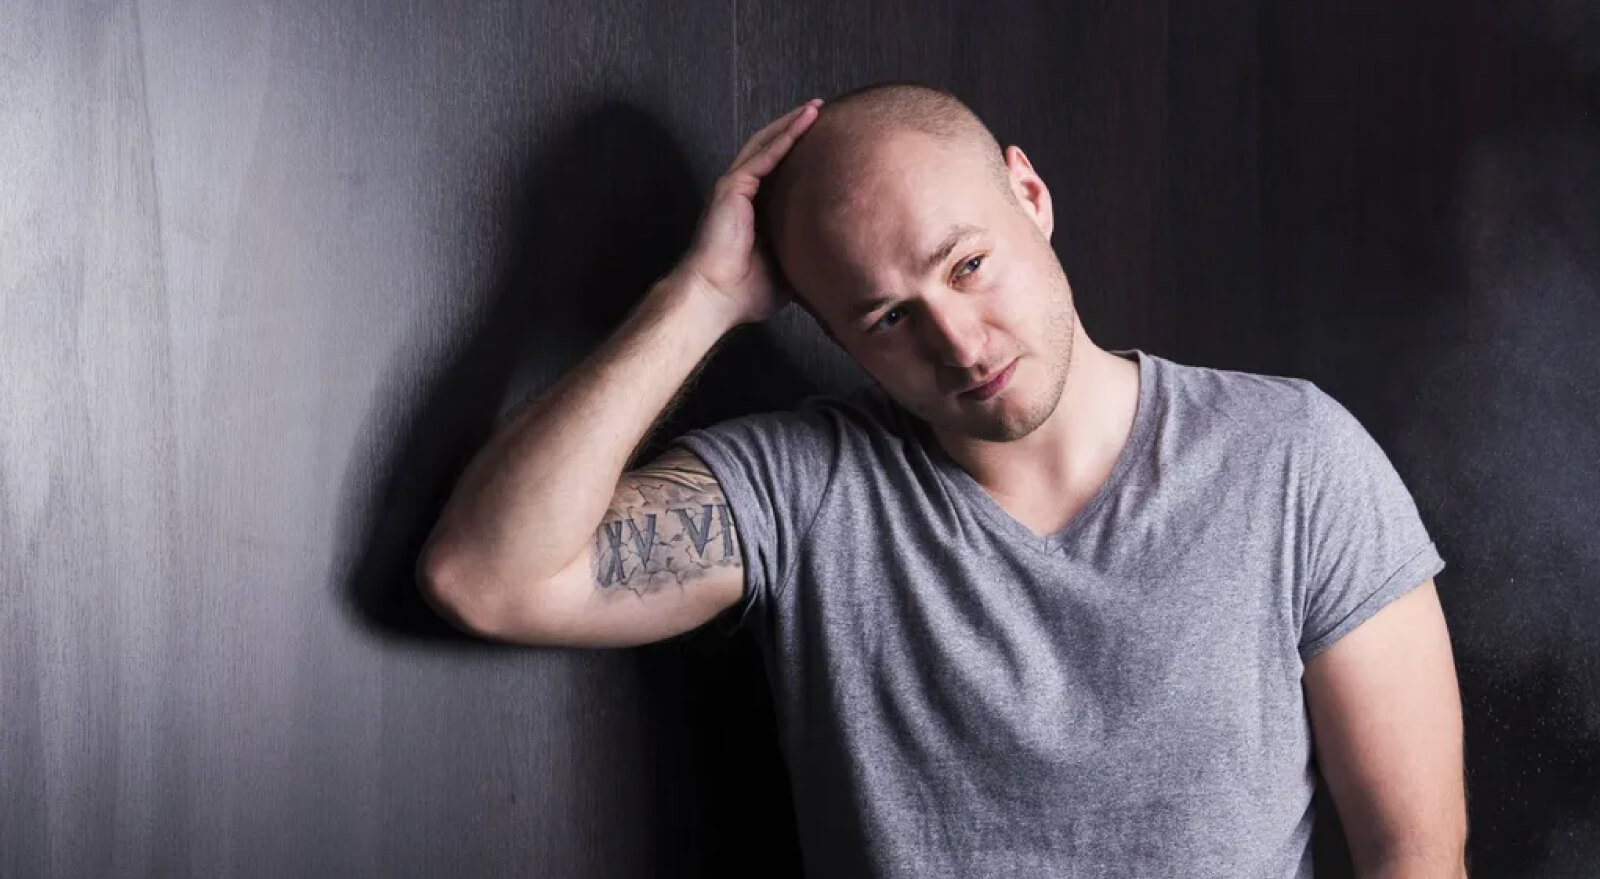 The Top Reasons Men Go Bald